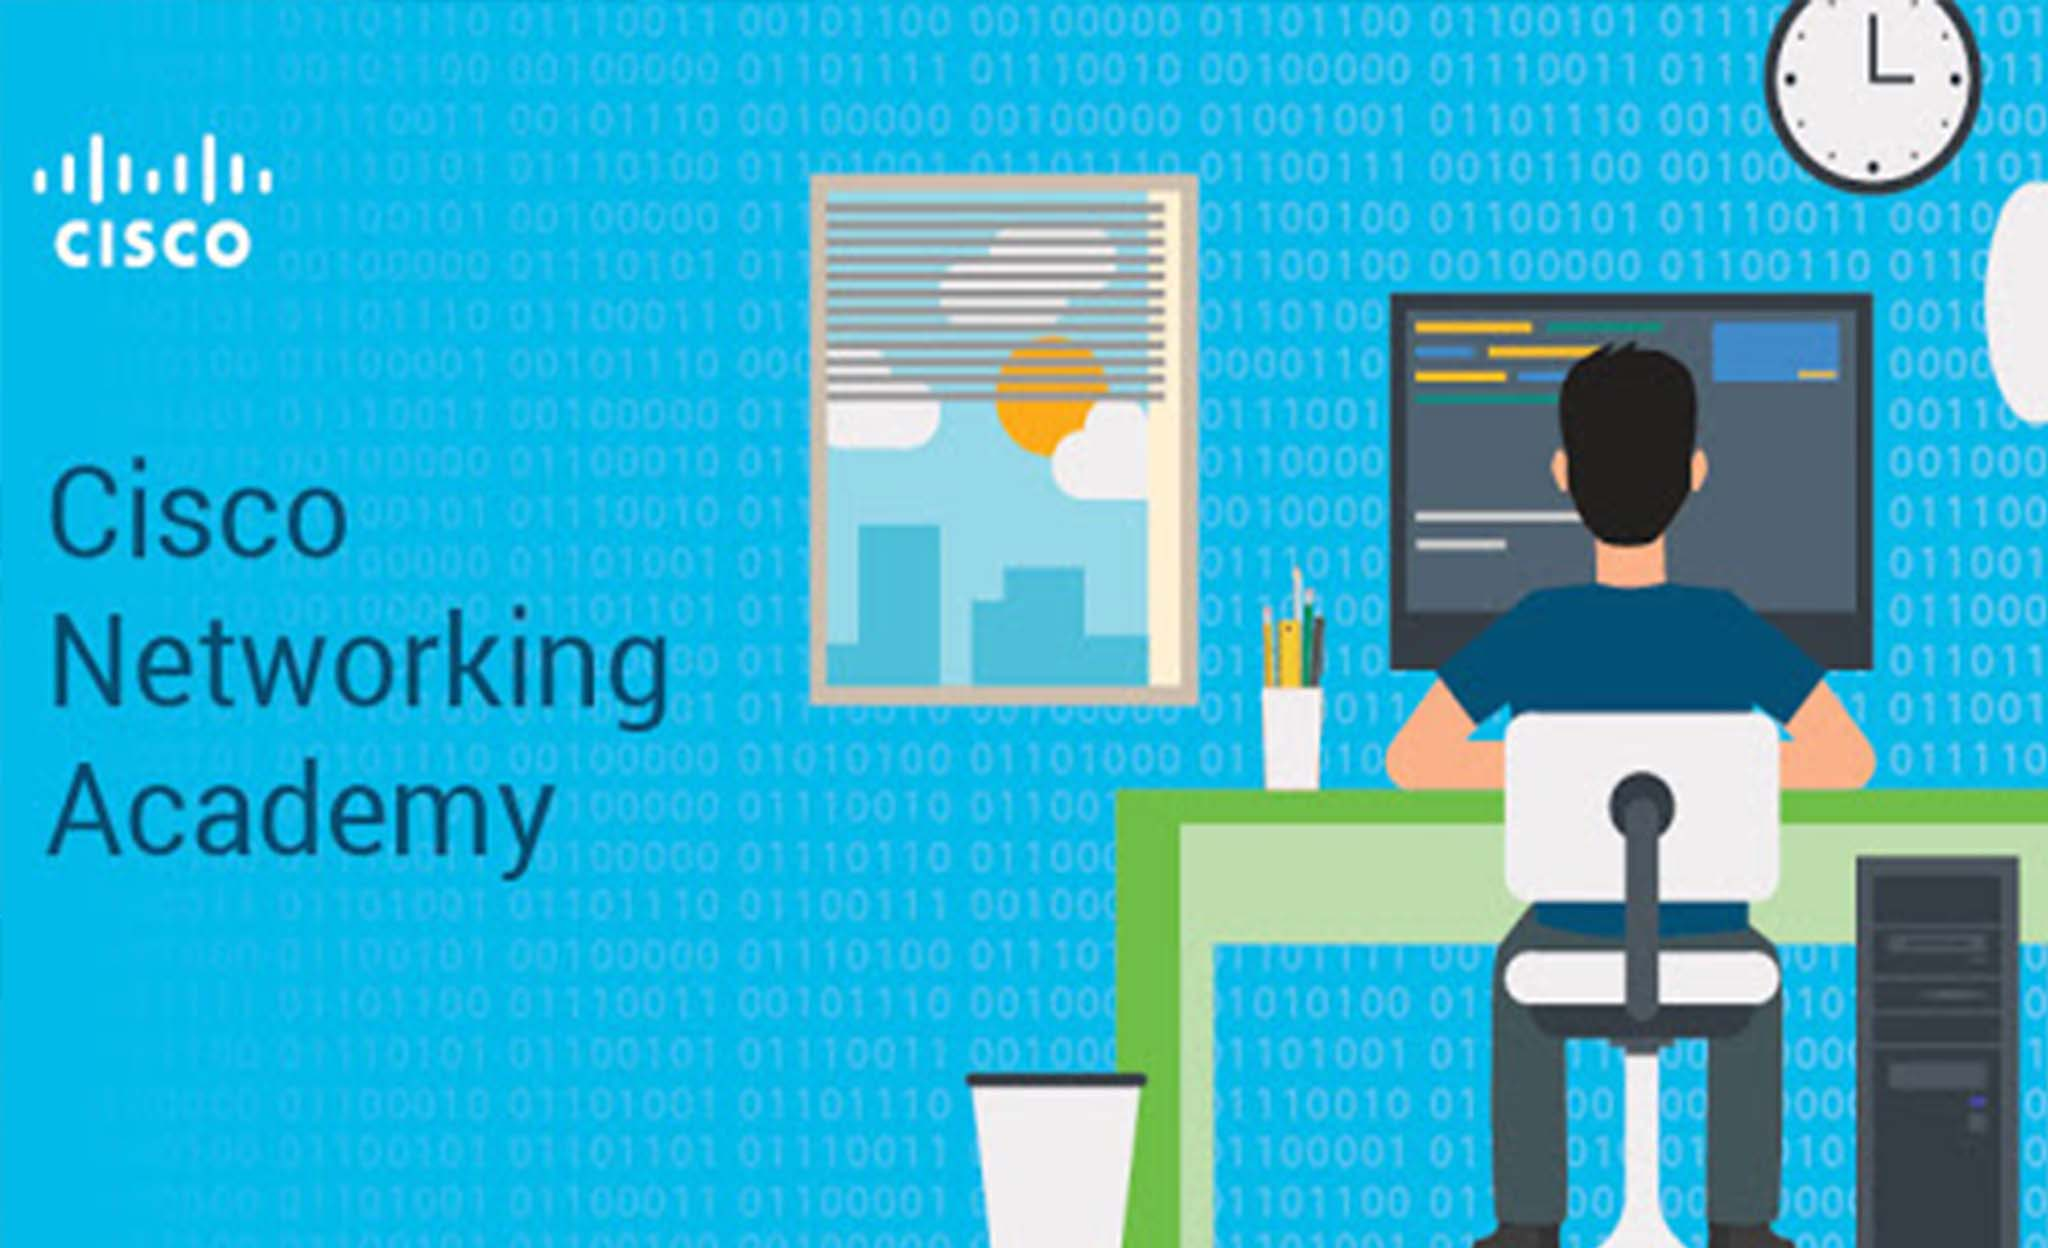 Cisco Networking Academy (DEVASC)